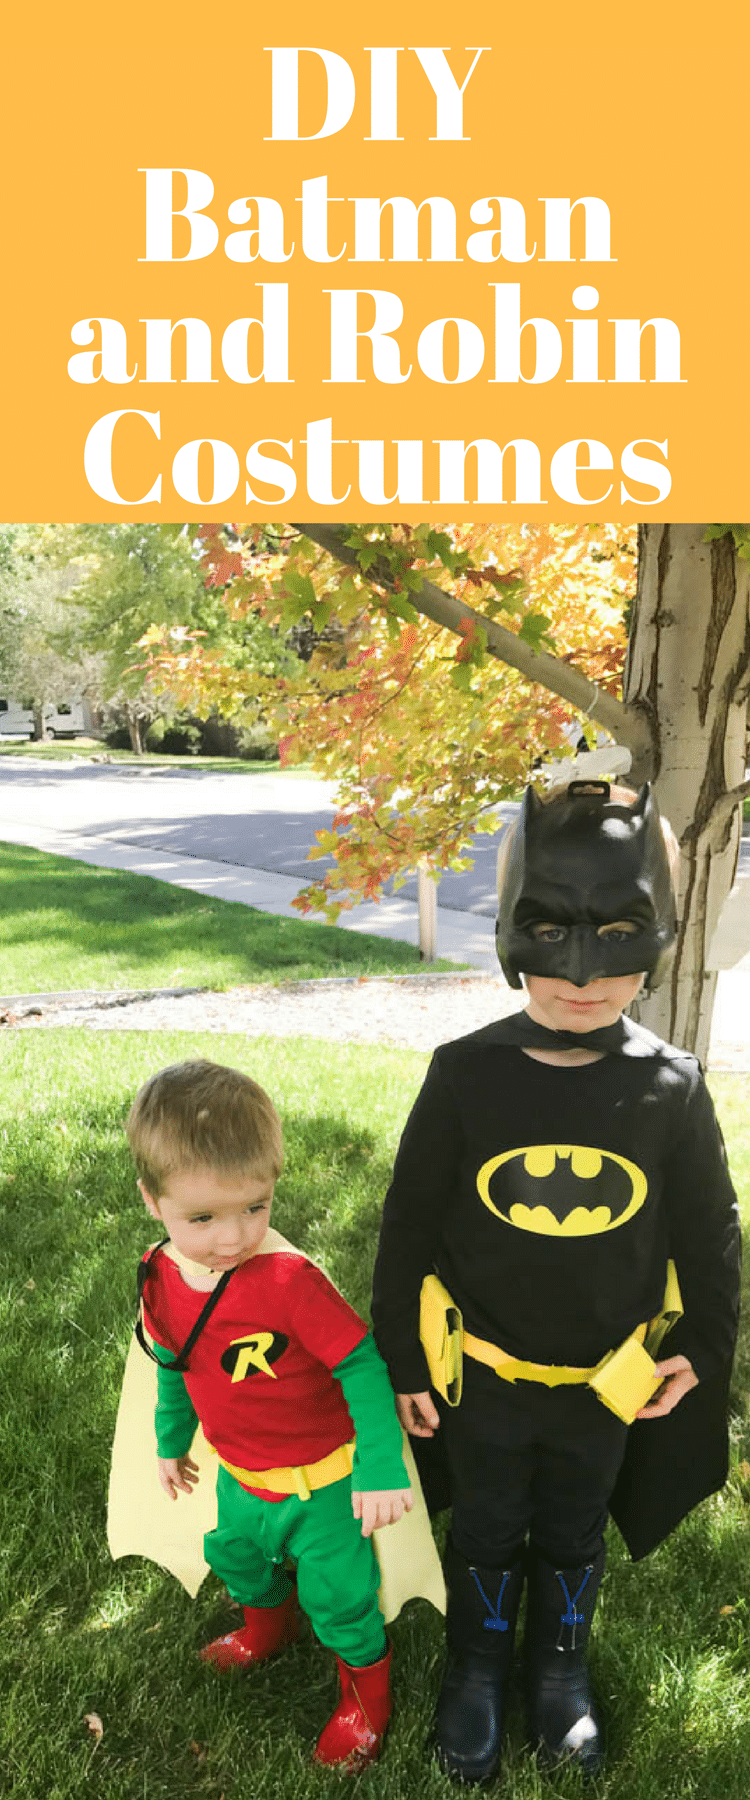 DIY Batman Costume / DIY Robin Costume / Robin Costume for Toddlers / Batman Costume for Kids / DIY Halloween via @clarkscondensed